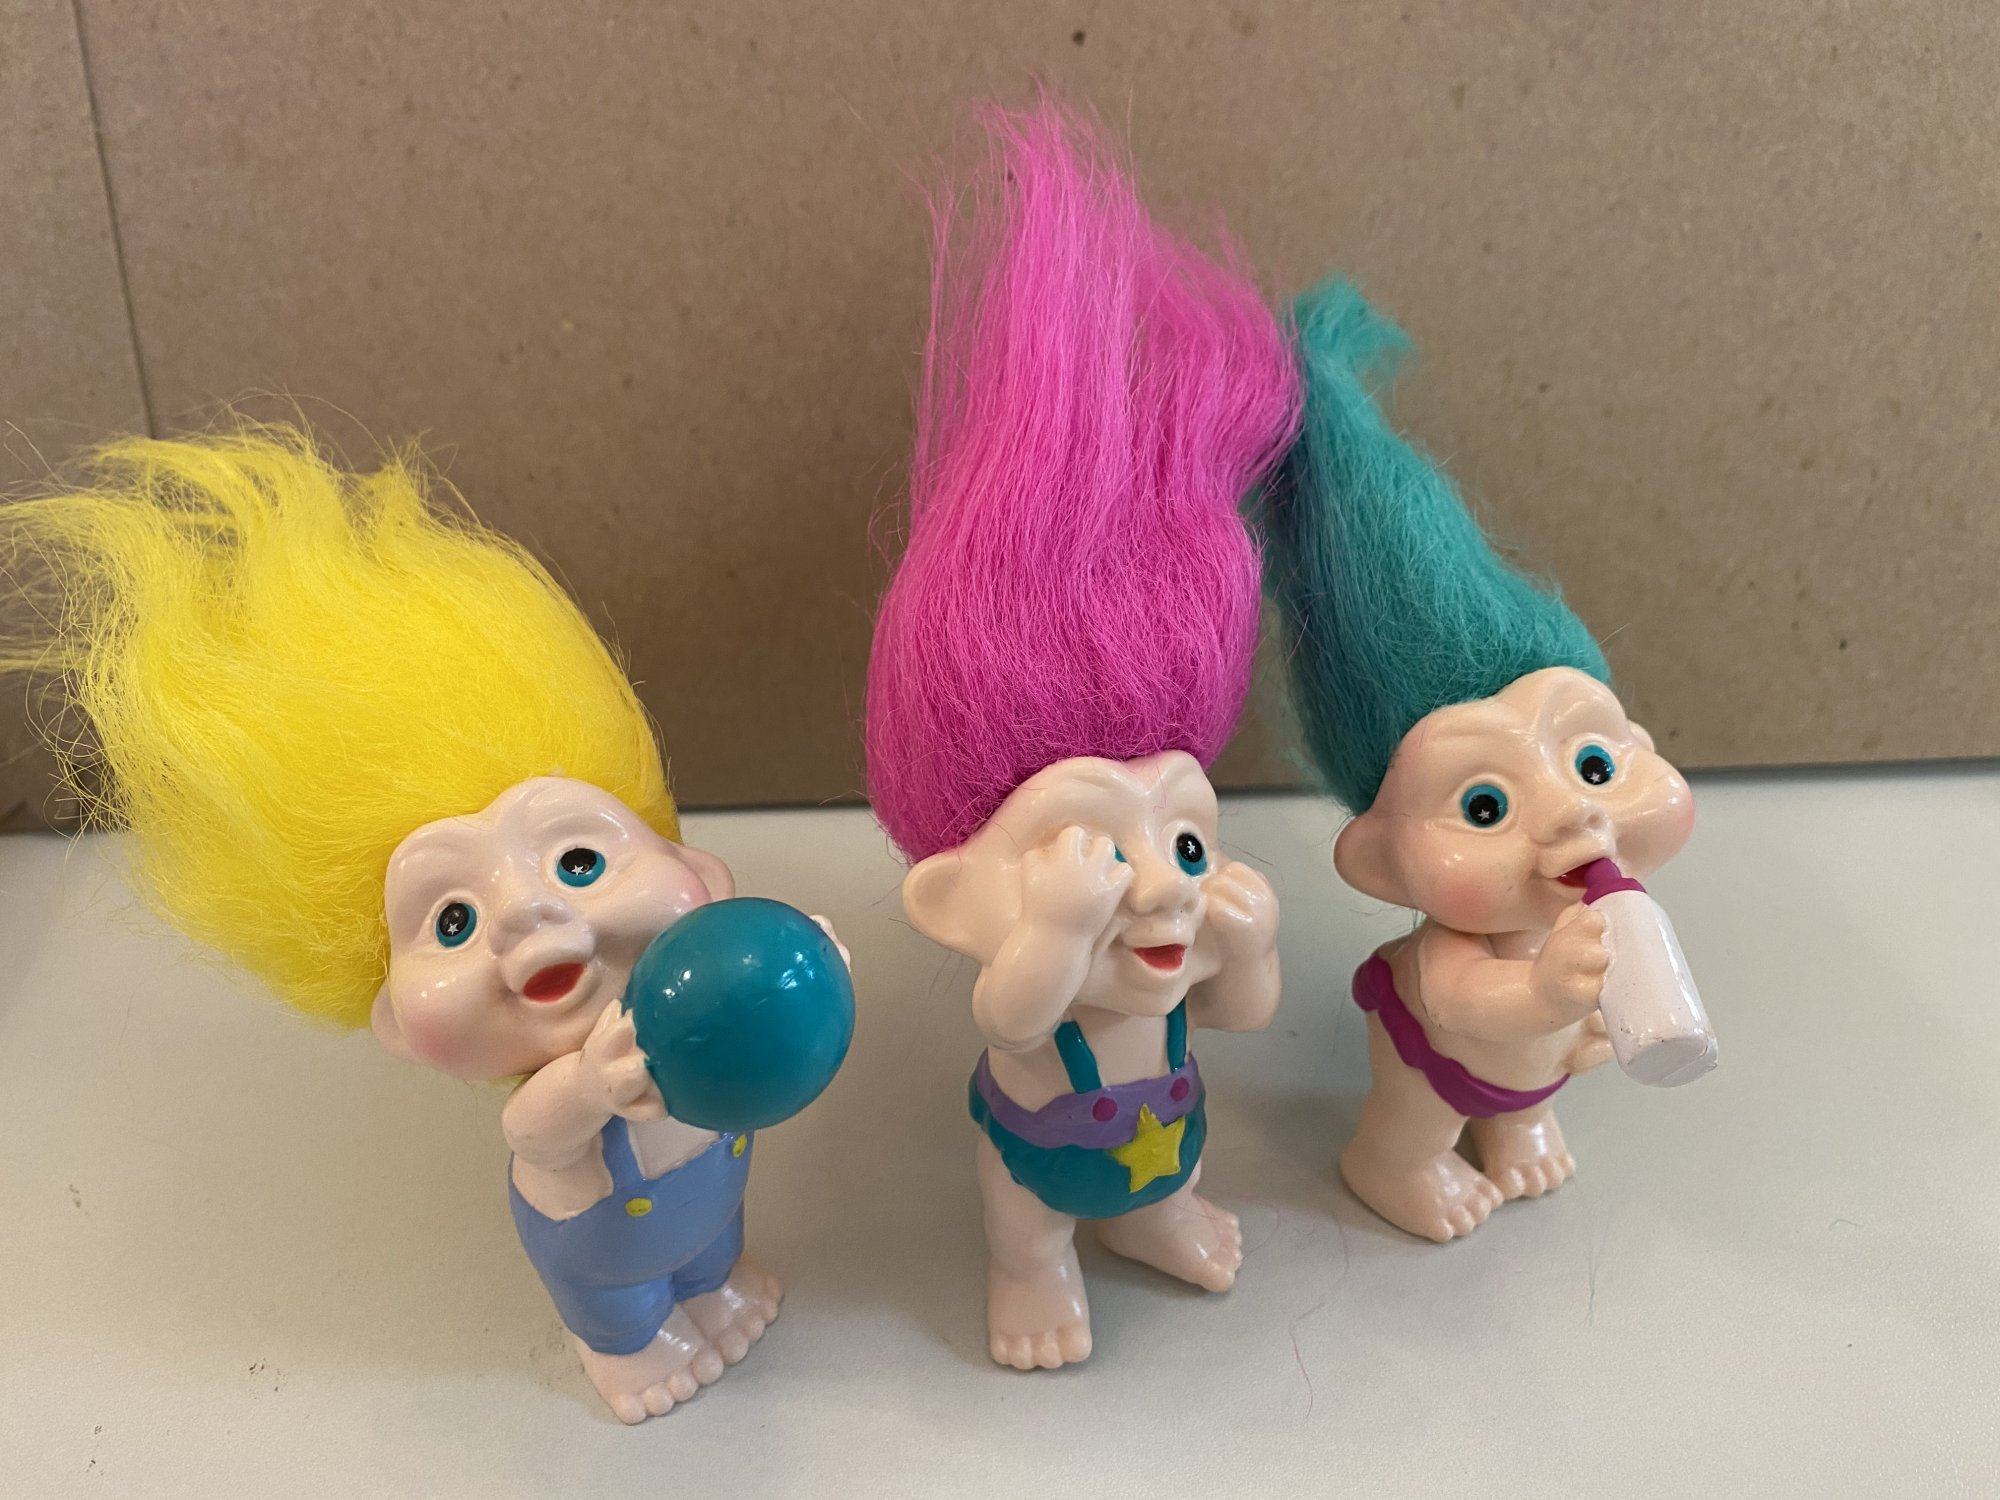 3pc Vintage Trolls Figurines cake kit 1 5 1/2 Tall